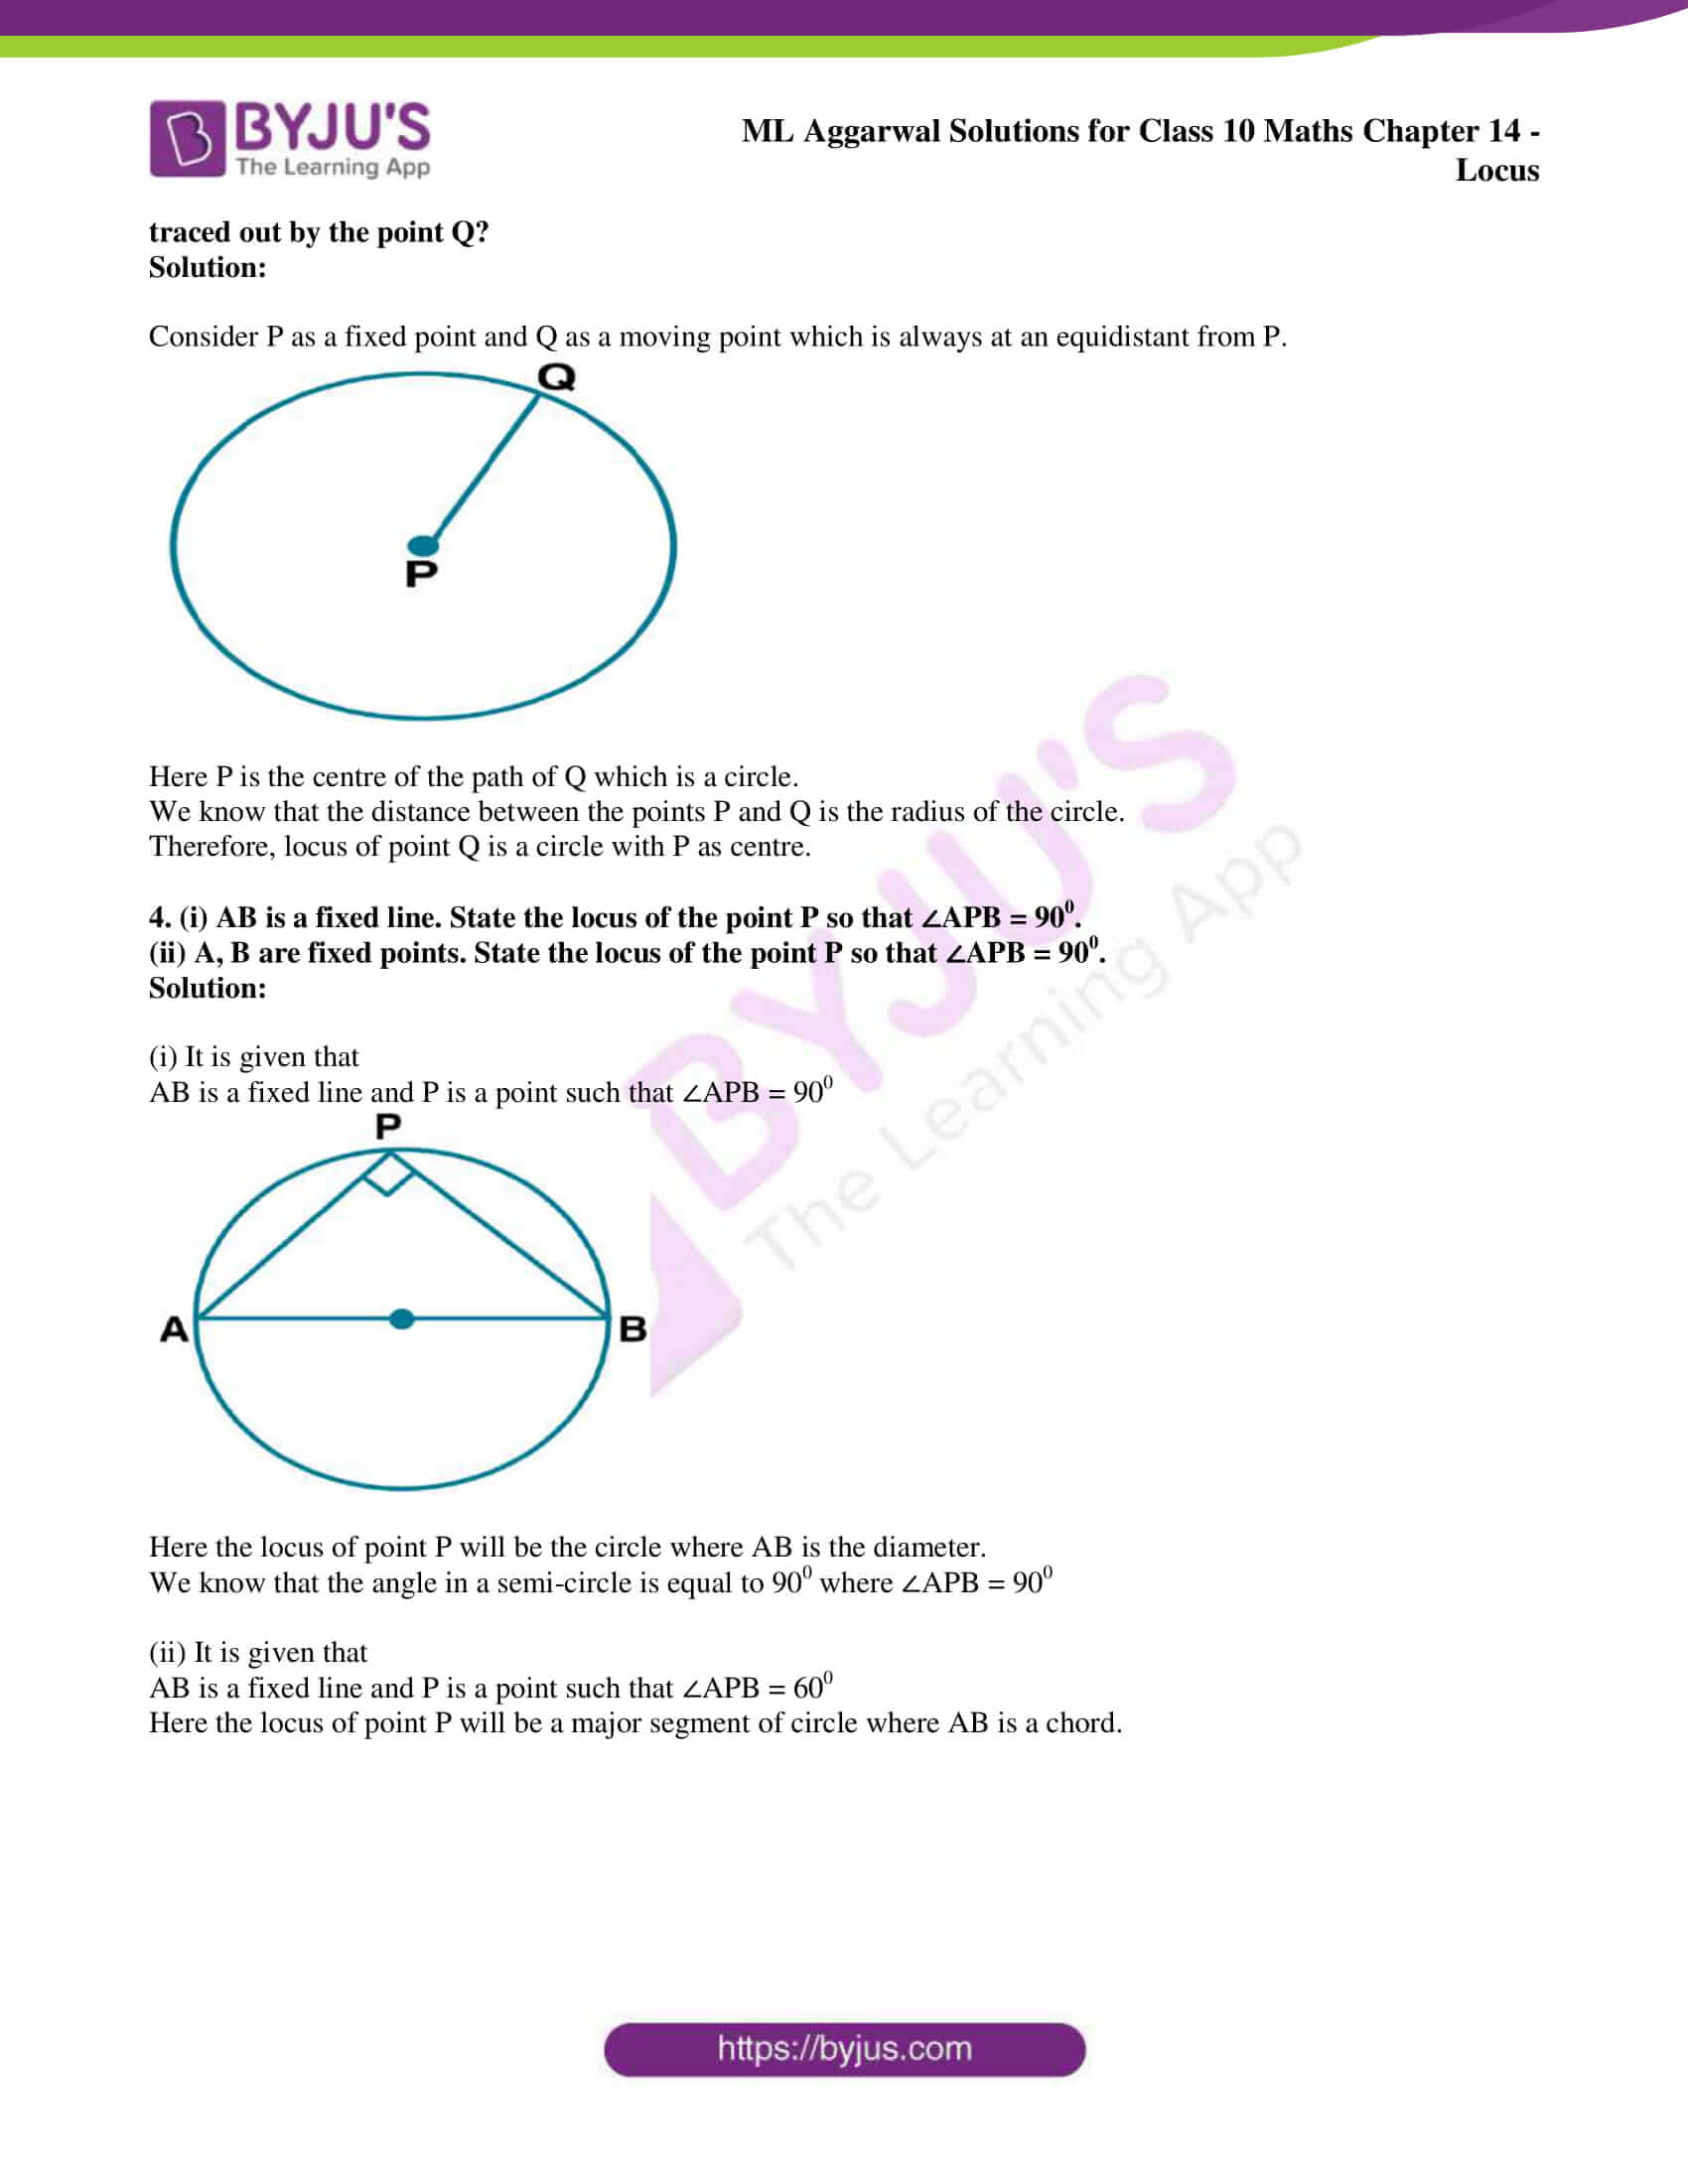 ml aggarwal solutions for class 10 maths chapter 14 02